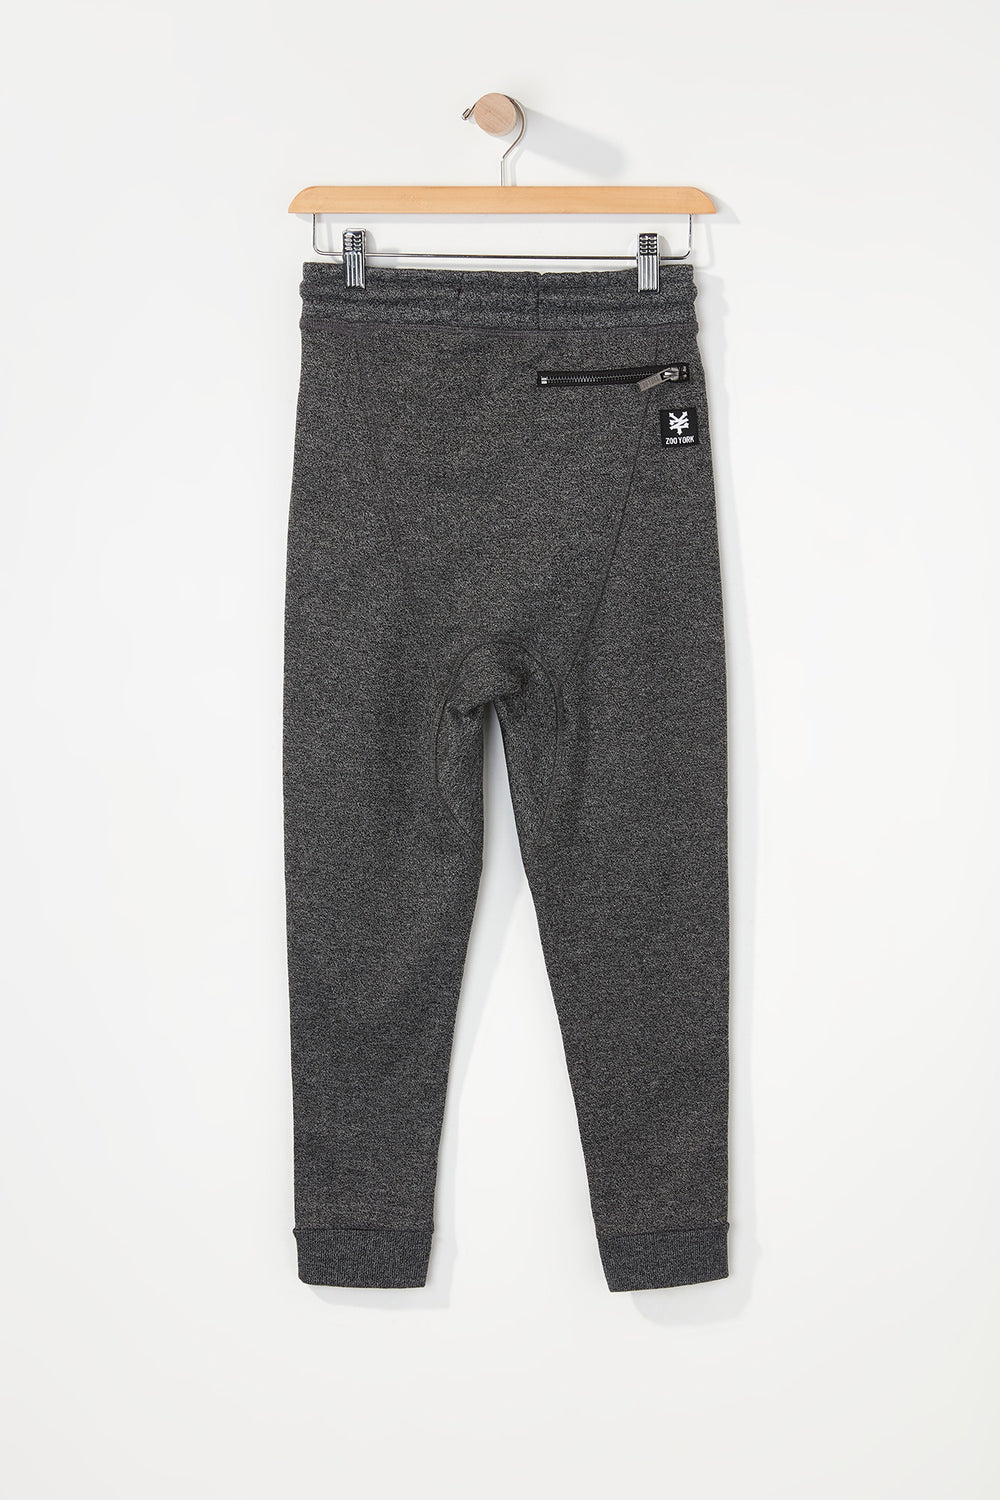 Zoo York Boys 3-Pocket Joggers Charcoal